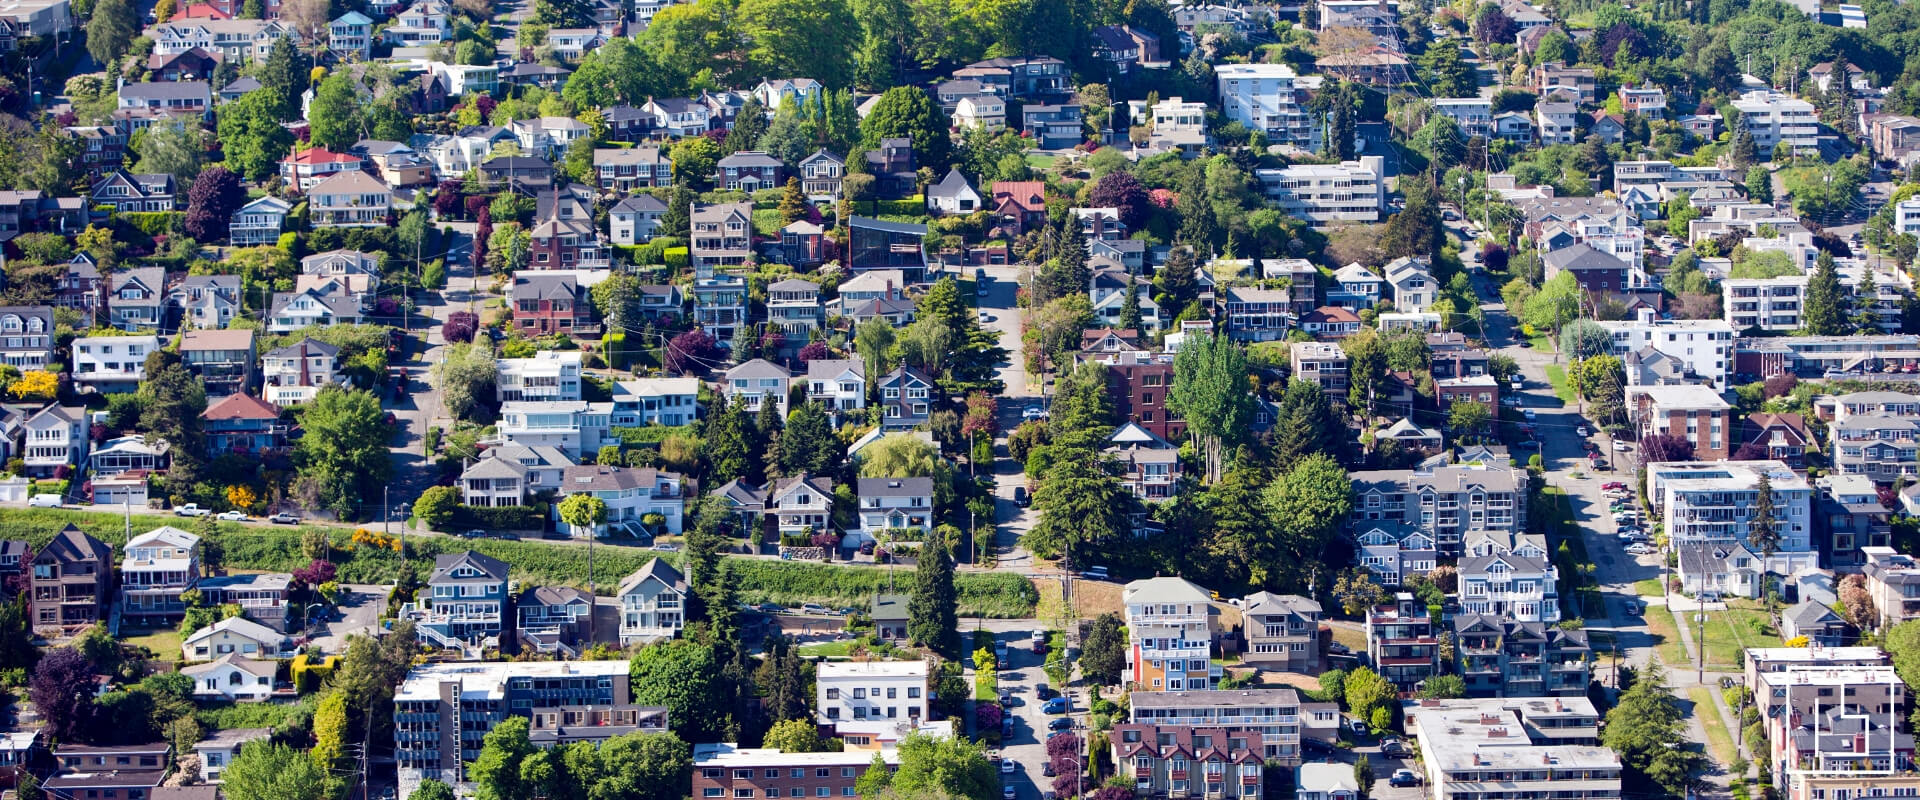 Seattle Hot Housing Market 2018 - Beachworks LLC